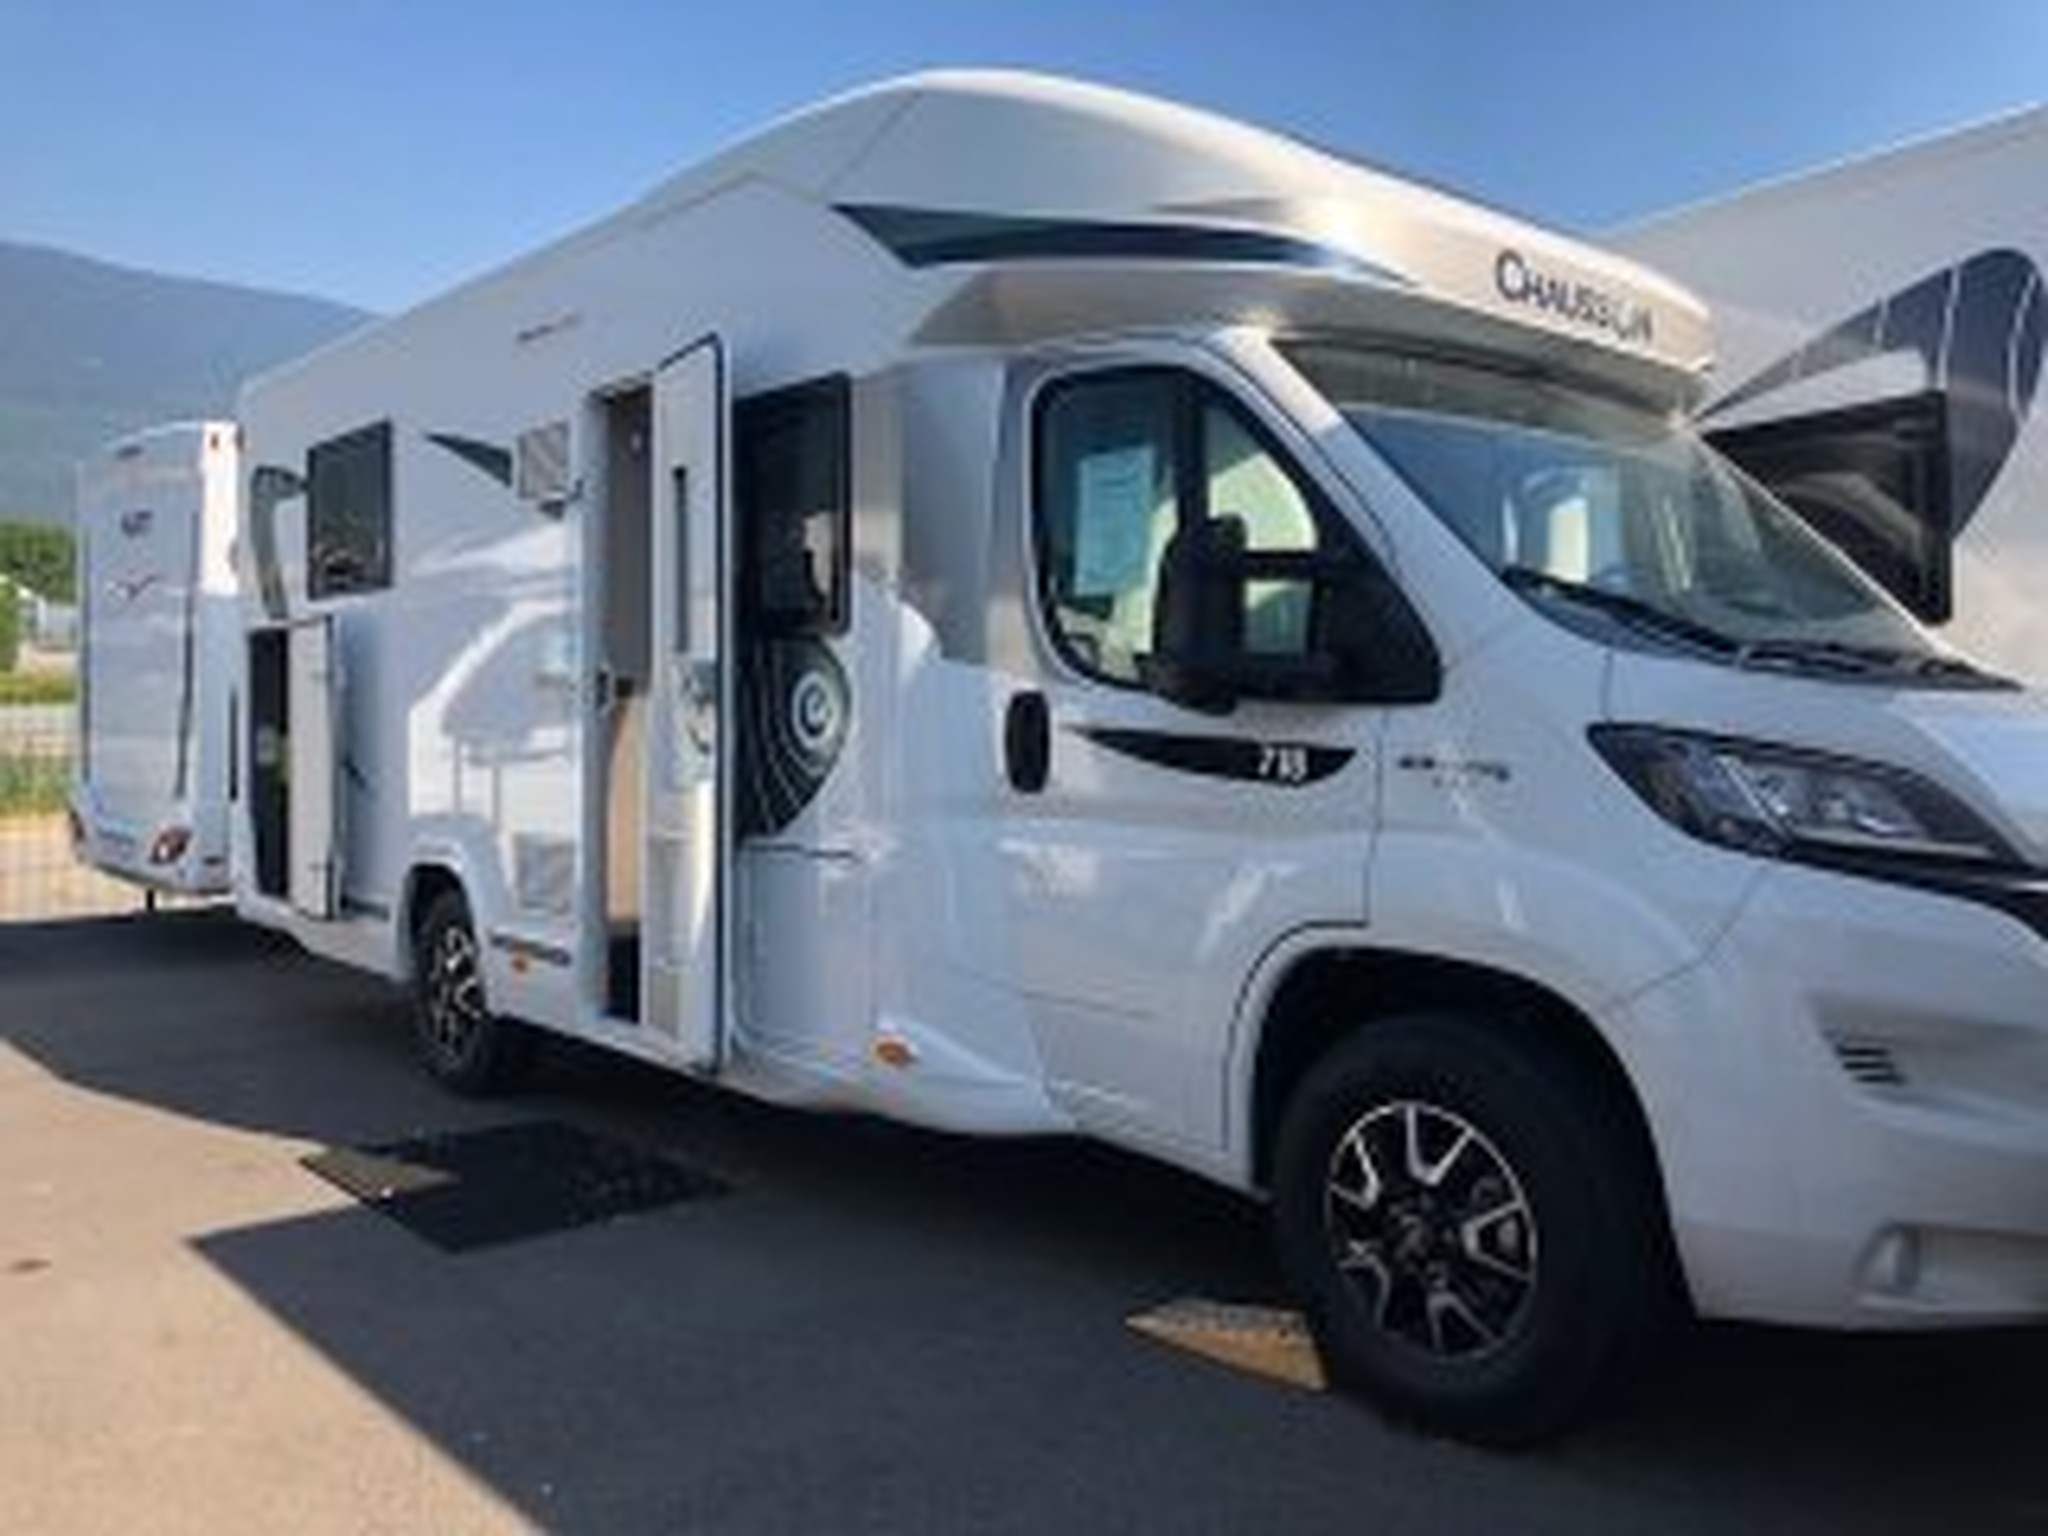 Camping-car CHAUSSON 718 Xlb Limited Edition